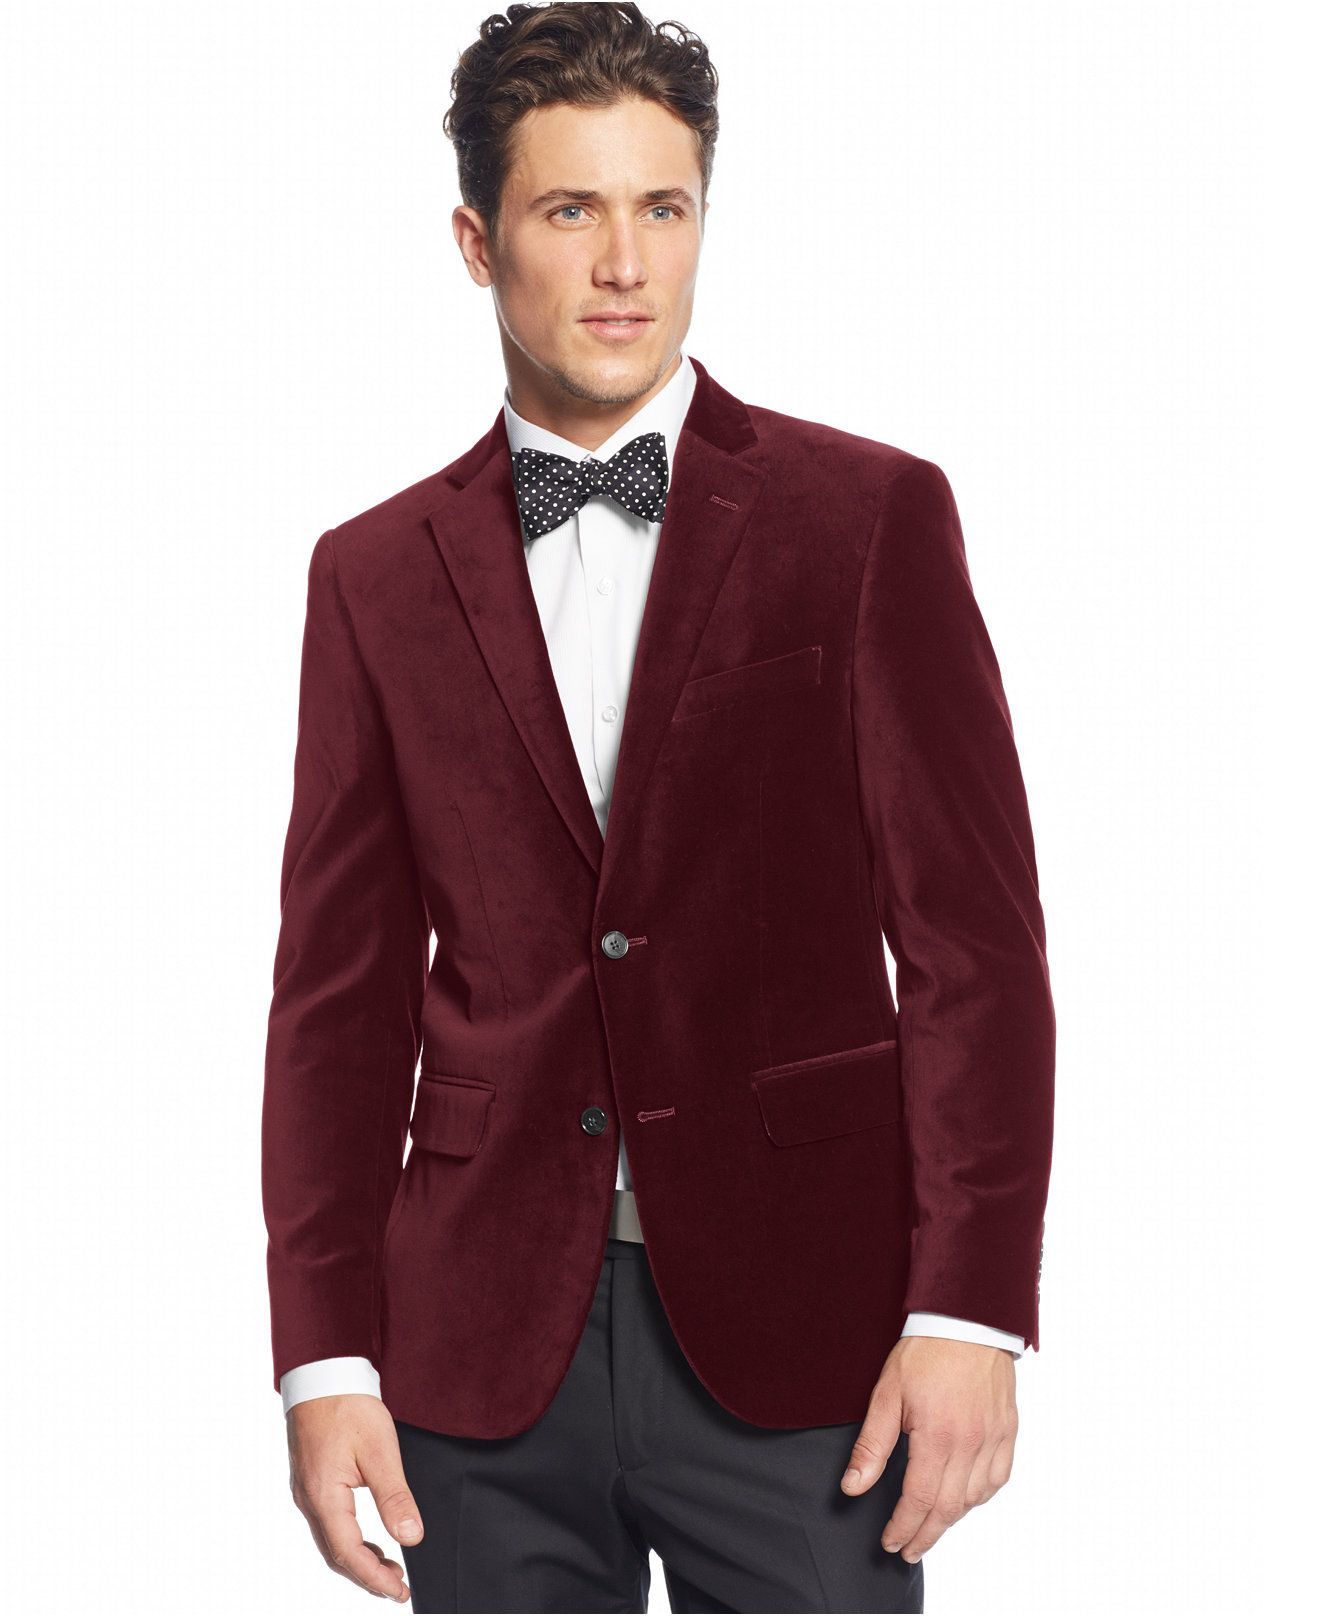 Alfani RED Velvet Slim-Fit Sport Coat - Blazers & Sport Coats ...